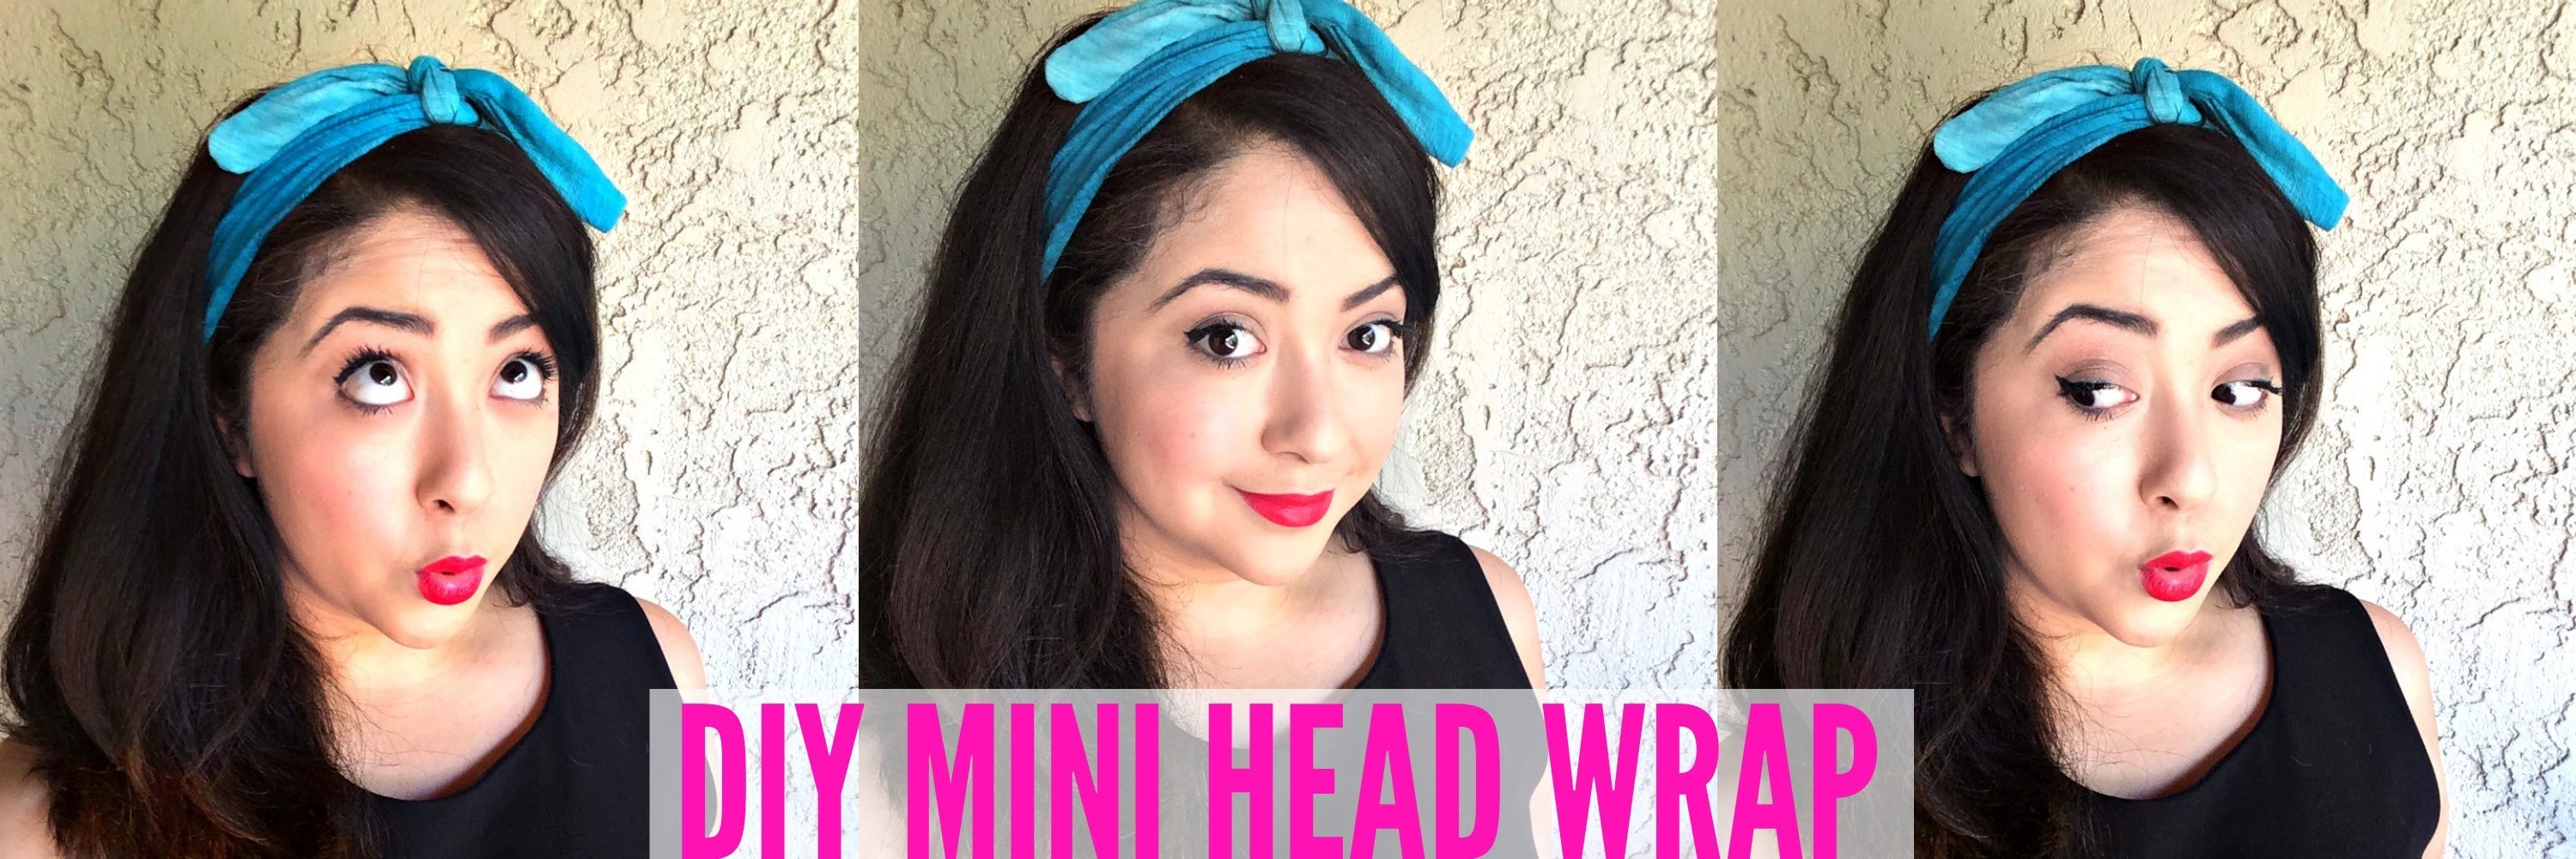 DIY MINI HEAD WRAP